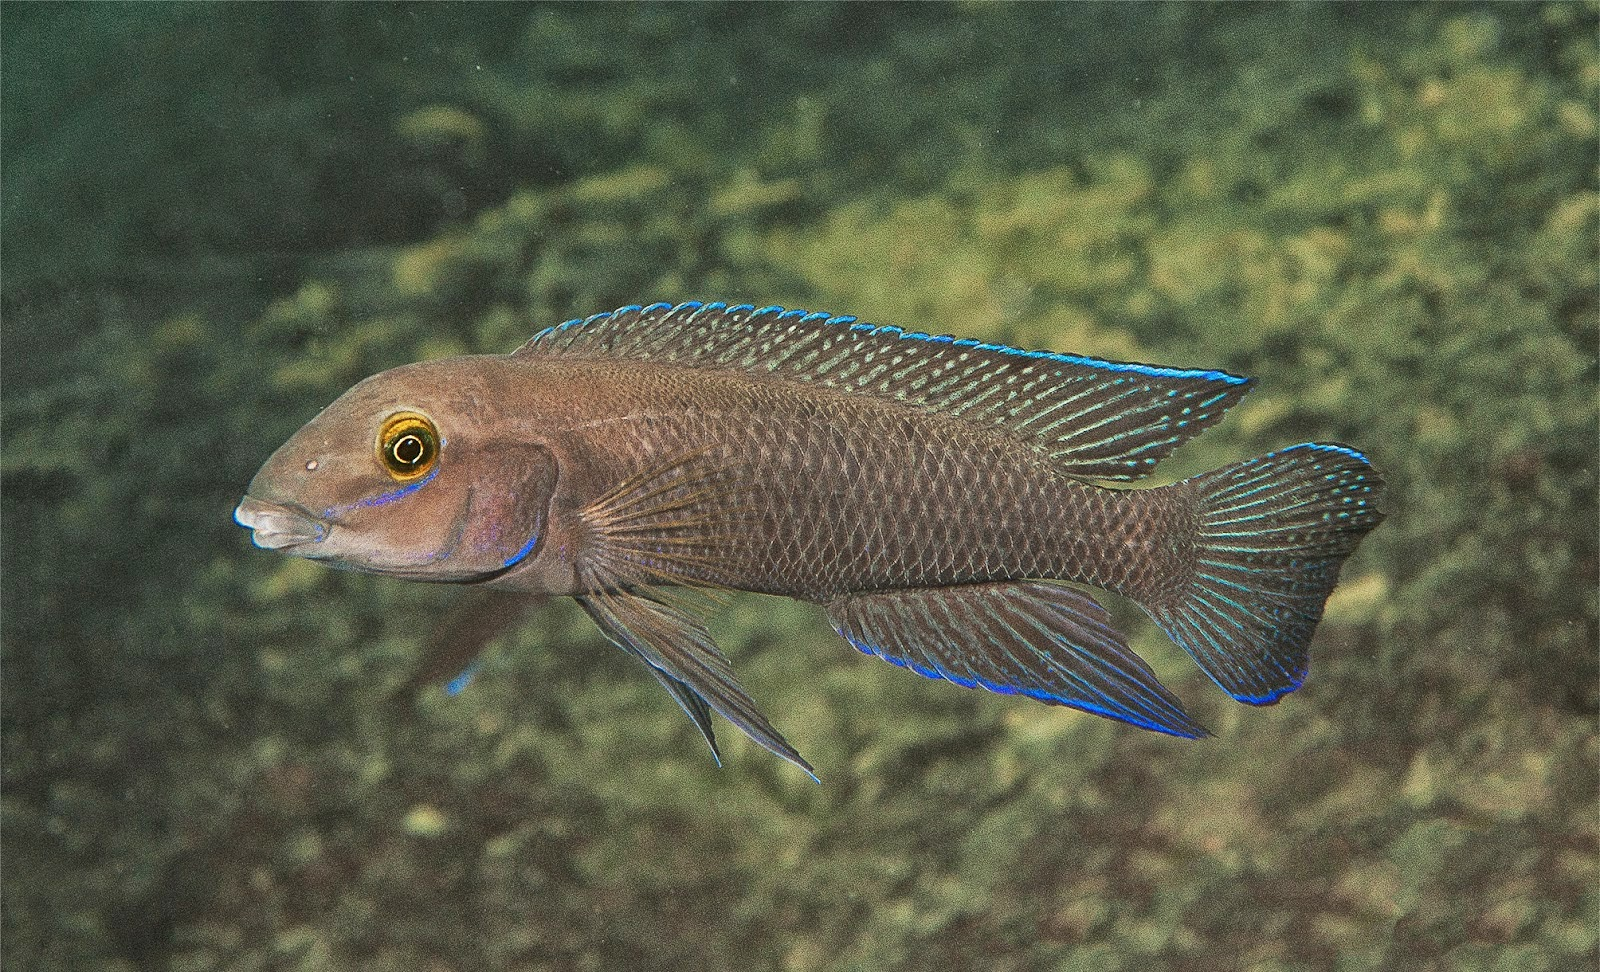 http://sciencythoughts.blogspot.co.uk/2014/05/a-new-species-of-cichlid-fish-from-lake.html